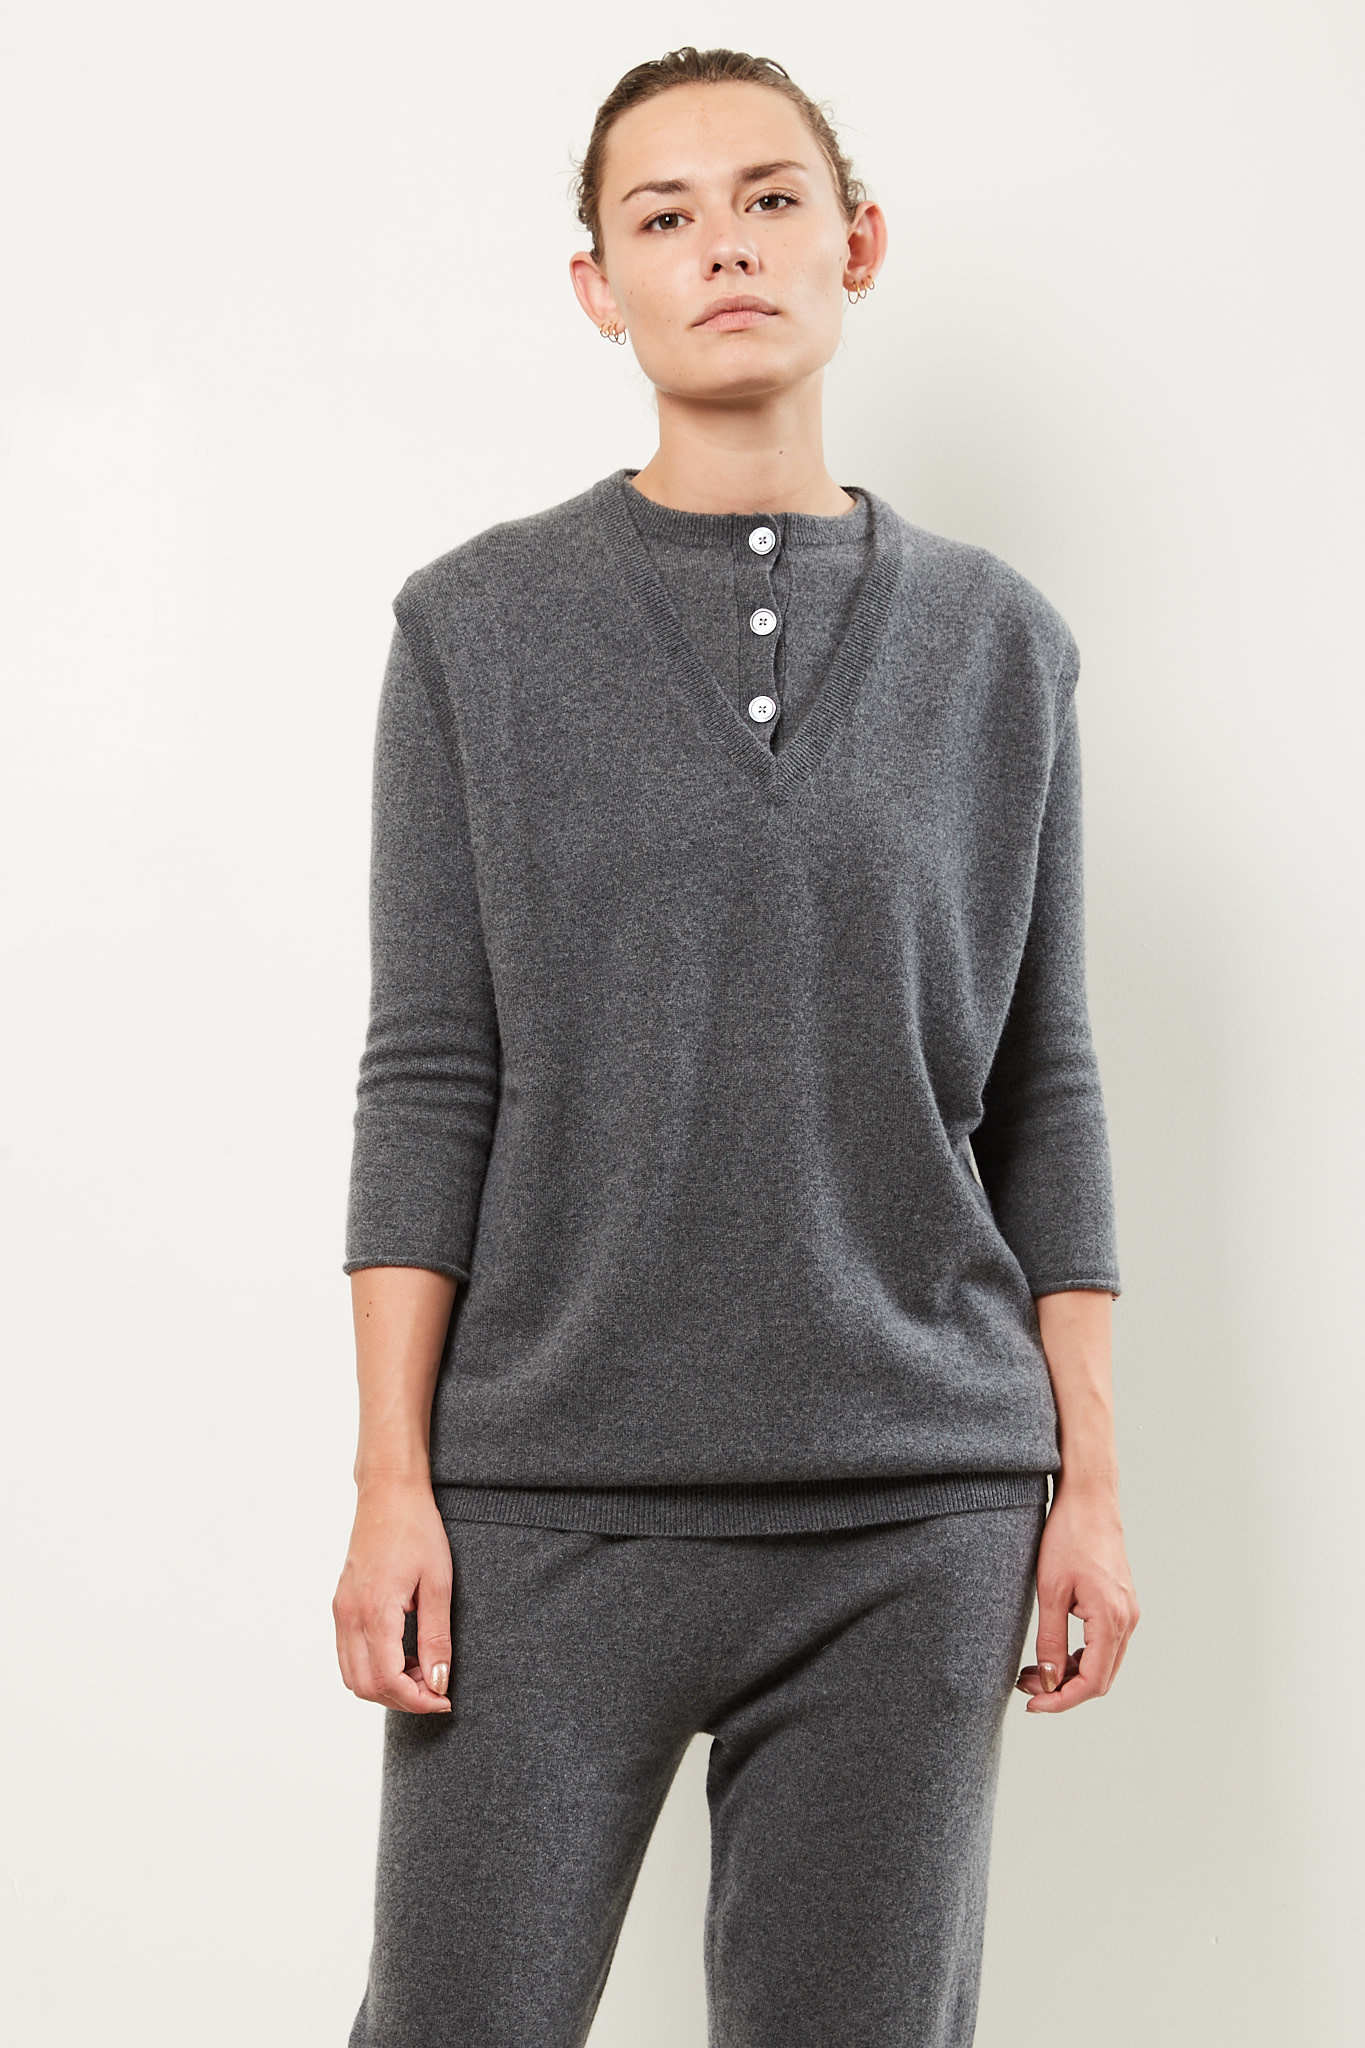 extreme cashmere - Clic comfort fit spencer